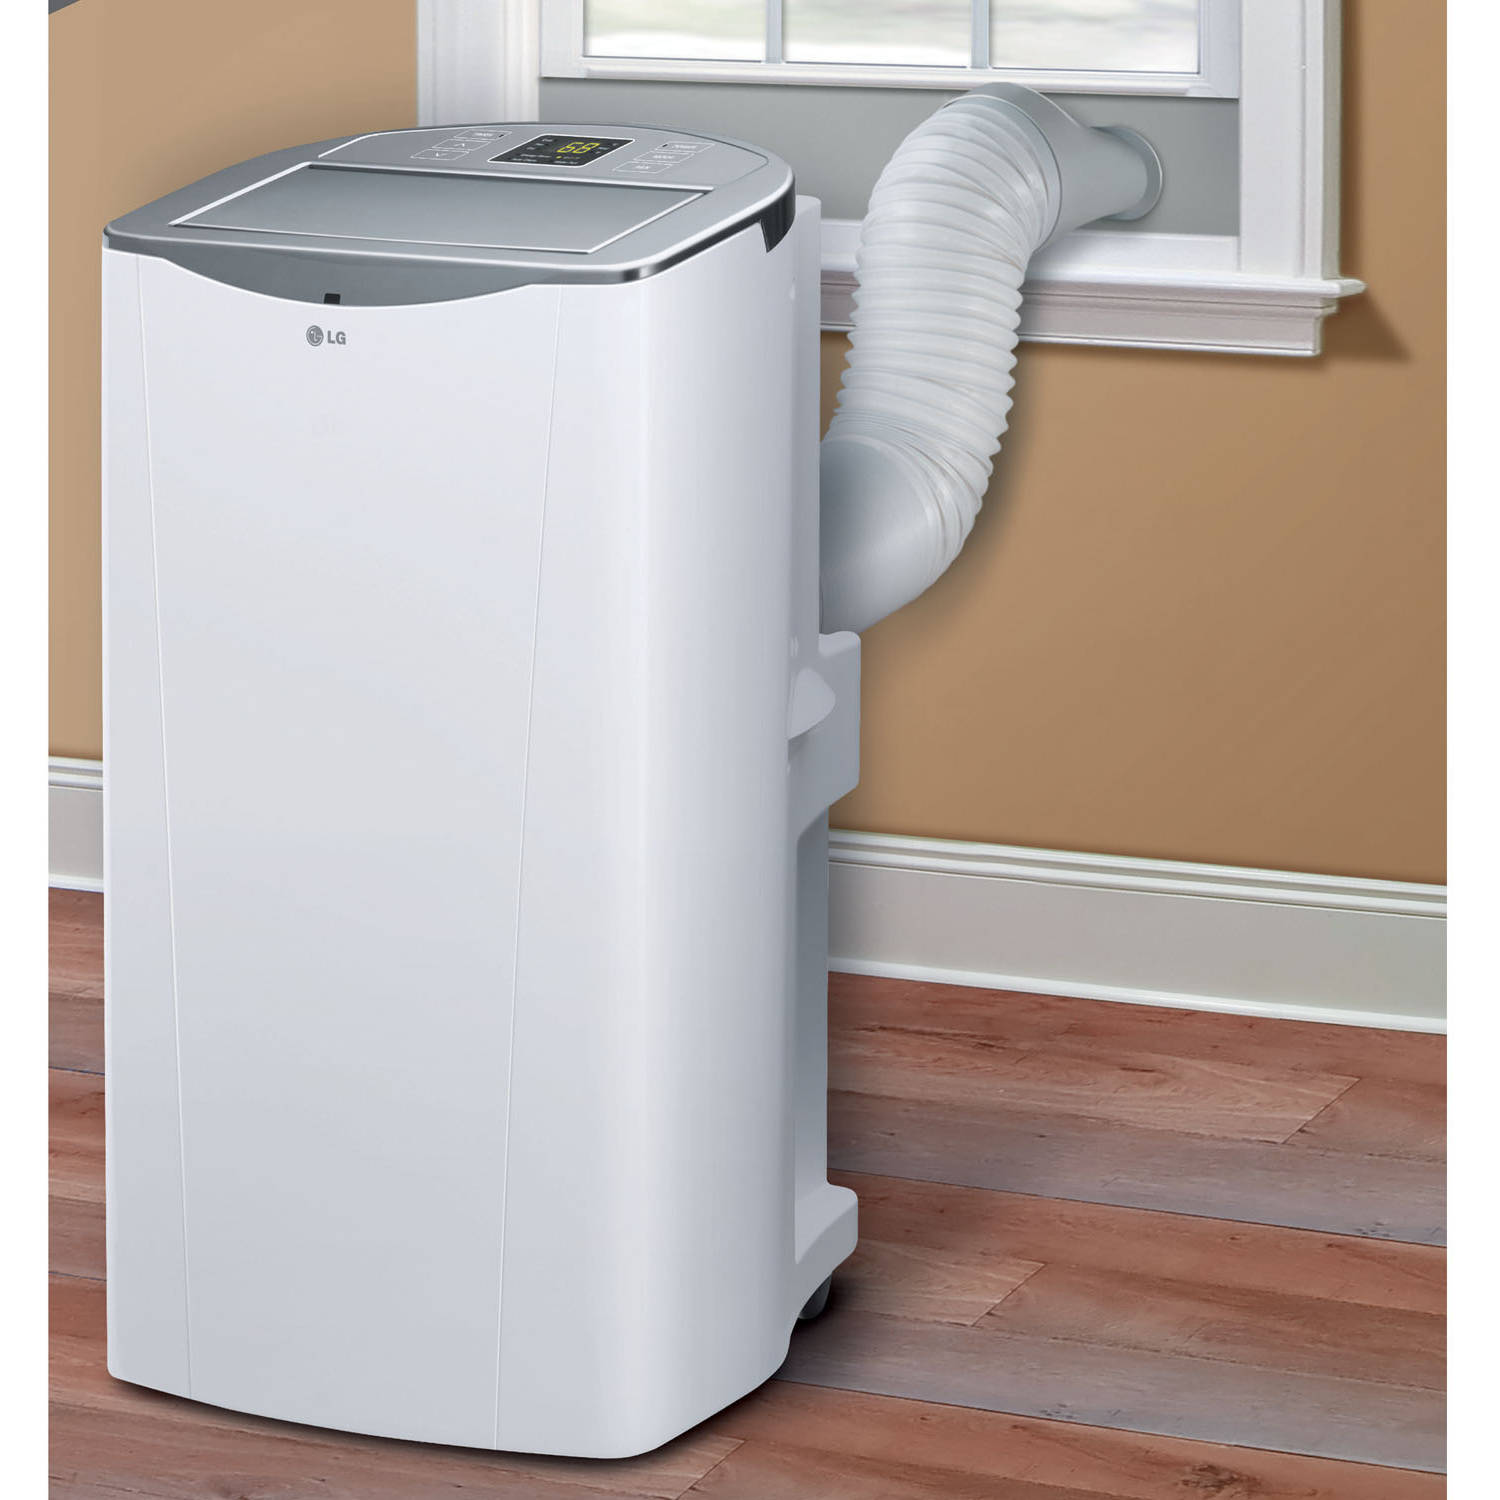 LG Electronics LP1415WXRSM 14,000-BTU 115V Portable Air Conditioner with WiFi Technology